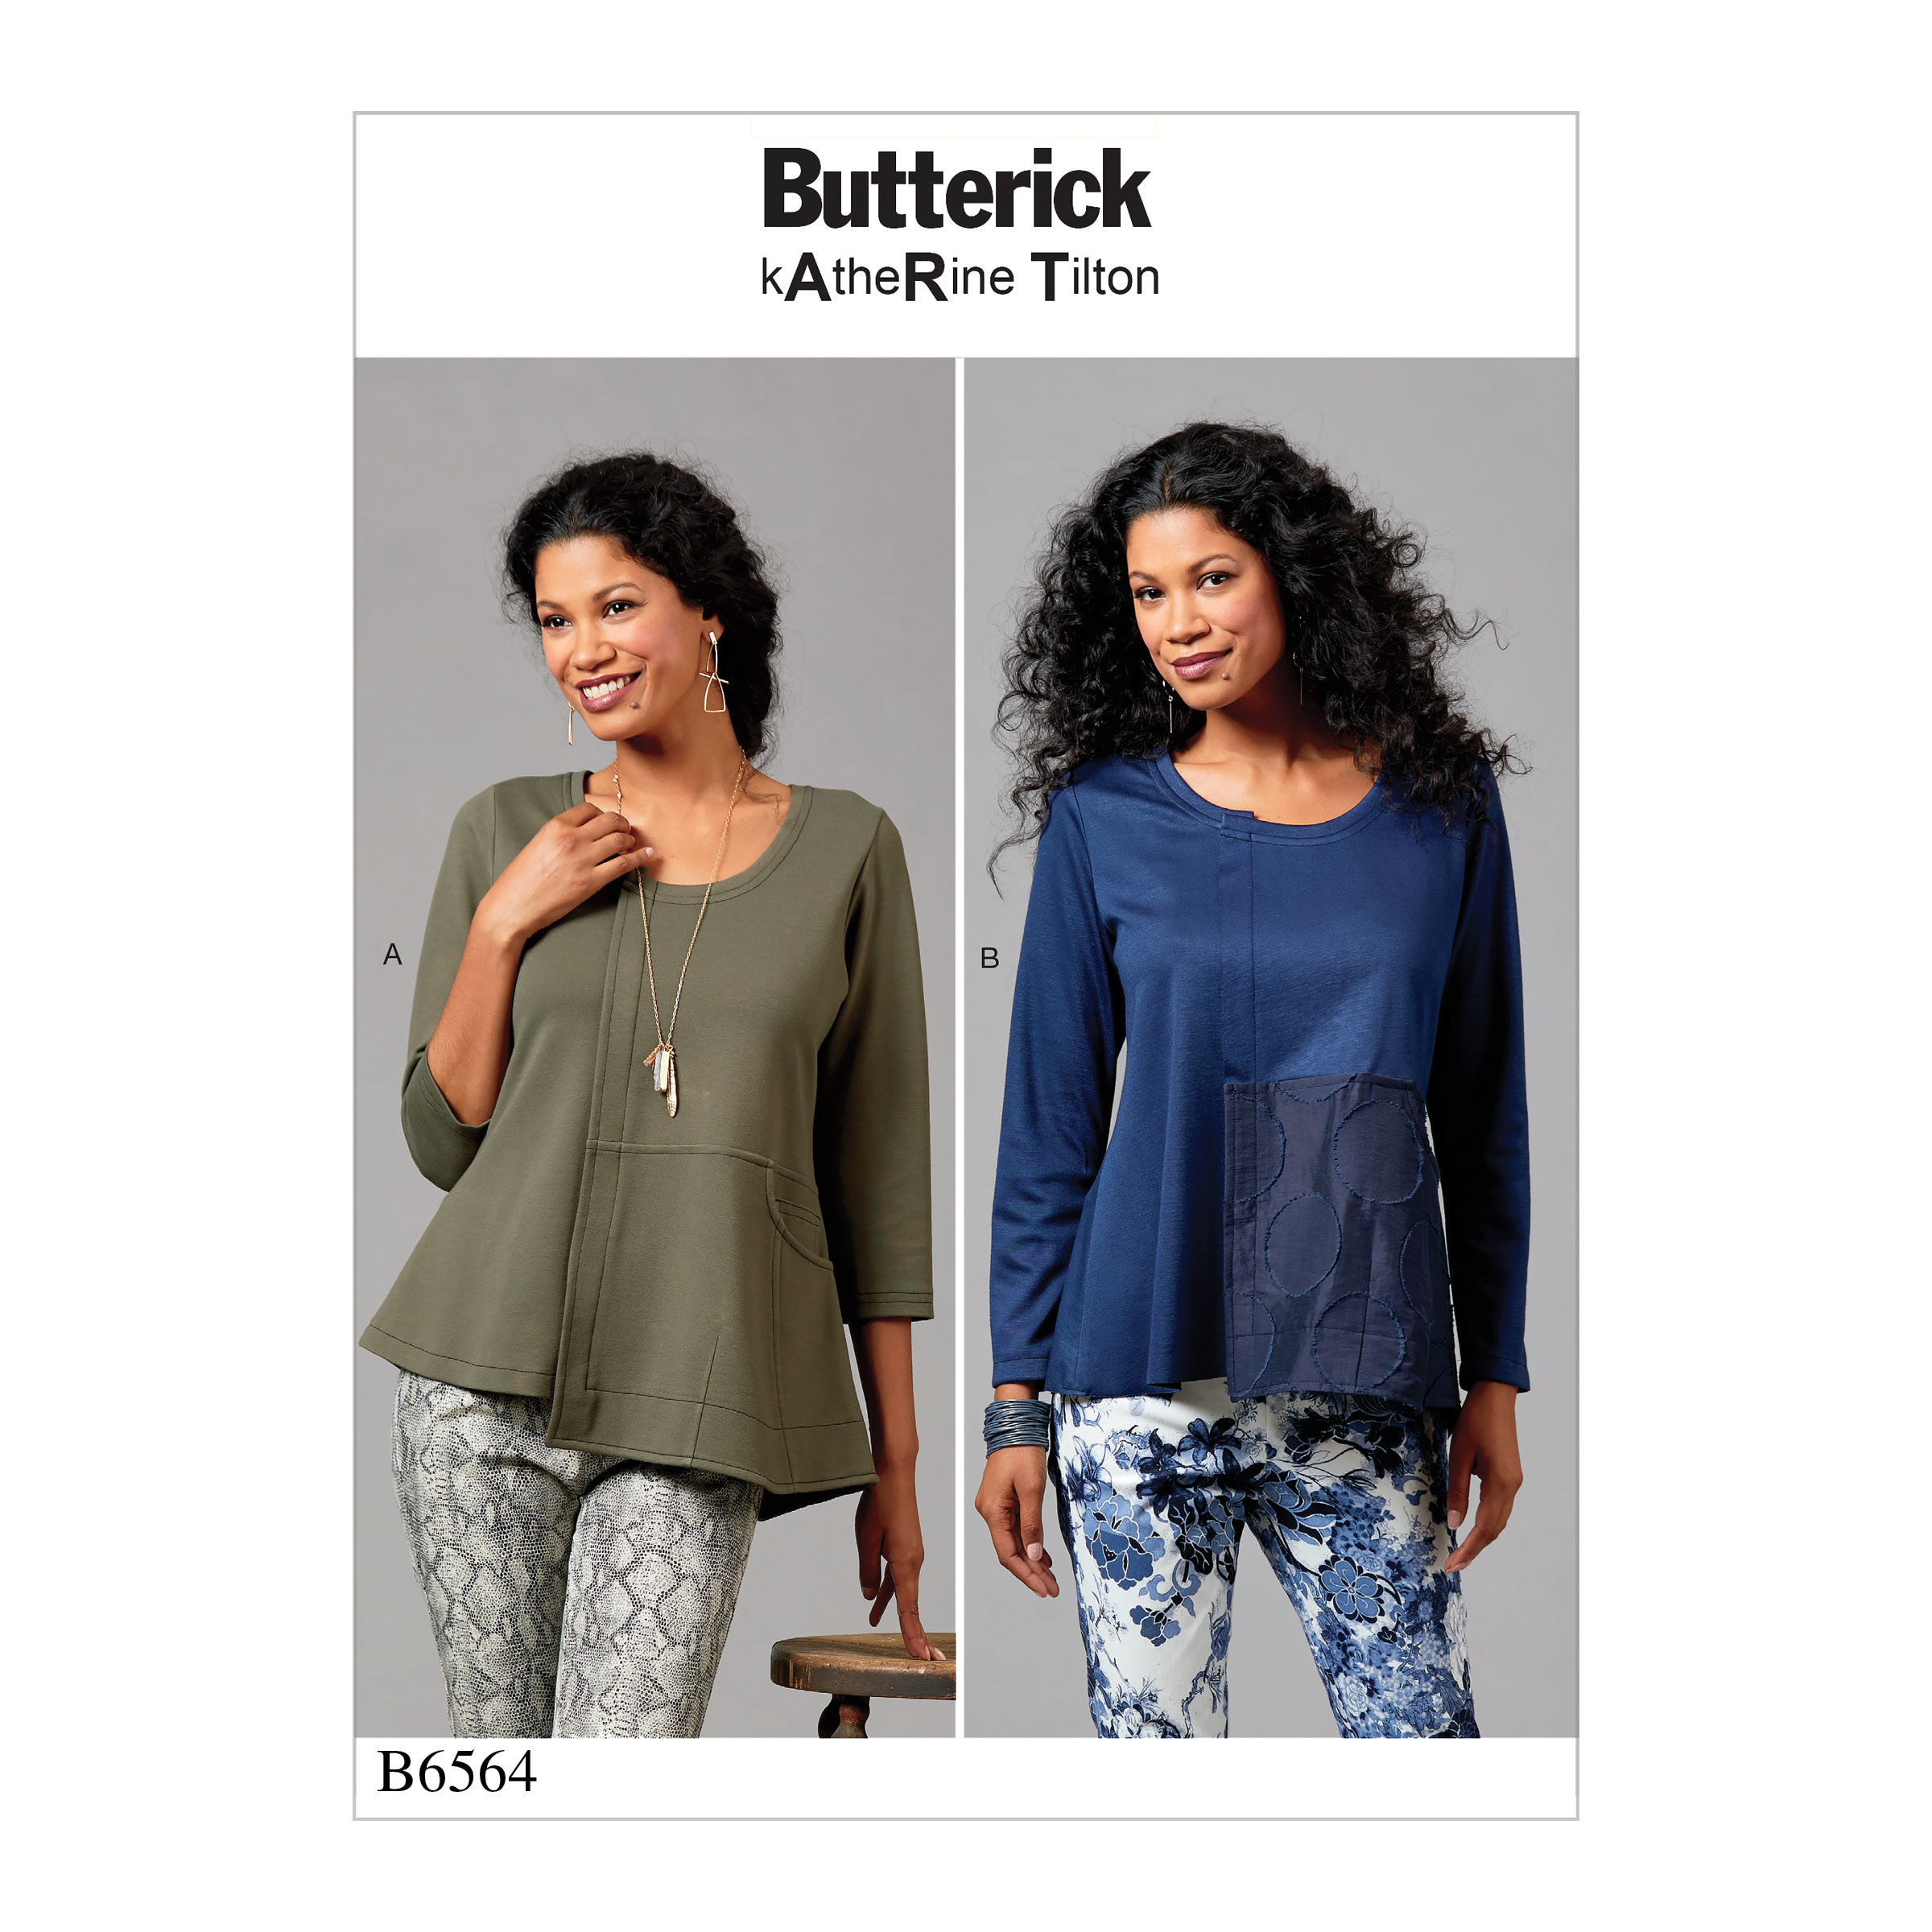 New butterick spring collection 31318 patternreview blog the loose fitting comfortable and casual dress design will be your go to item in your wardrobe this spring you can contrast your fabrics with prints and jeuxipadfo Images